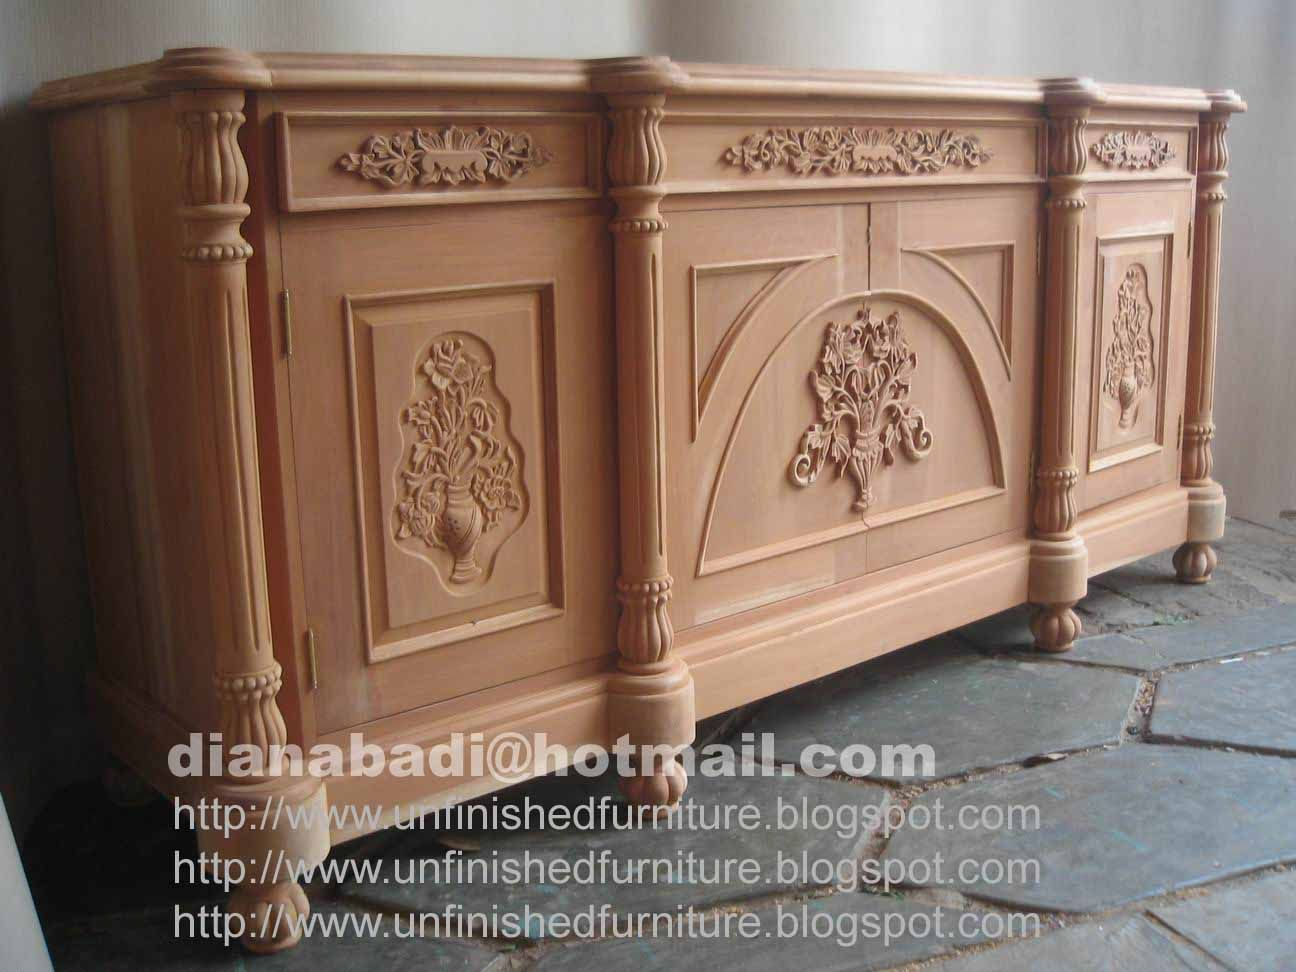 Unfinished Mahogany Furniture Medio Punto Wooden Sideboard Made Of Fine Solid Kiln Dry Mahogany Mahogany Furniture Italian Style Furniture Wooden Sideboard